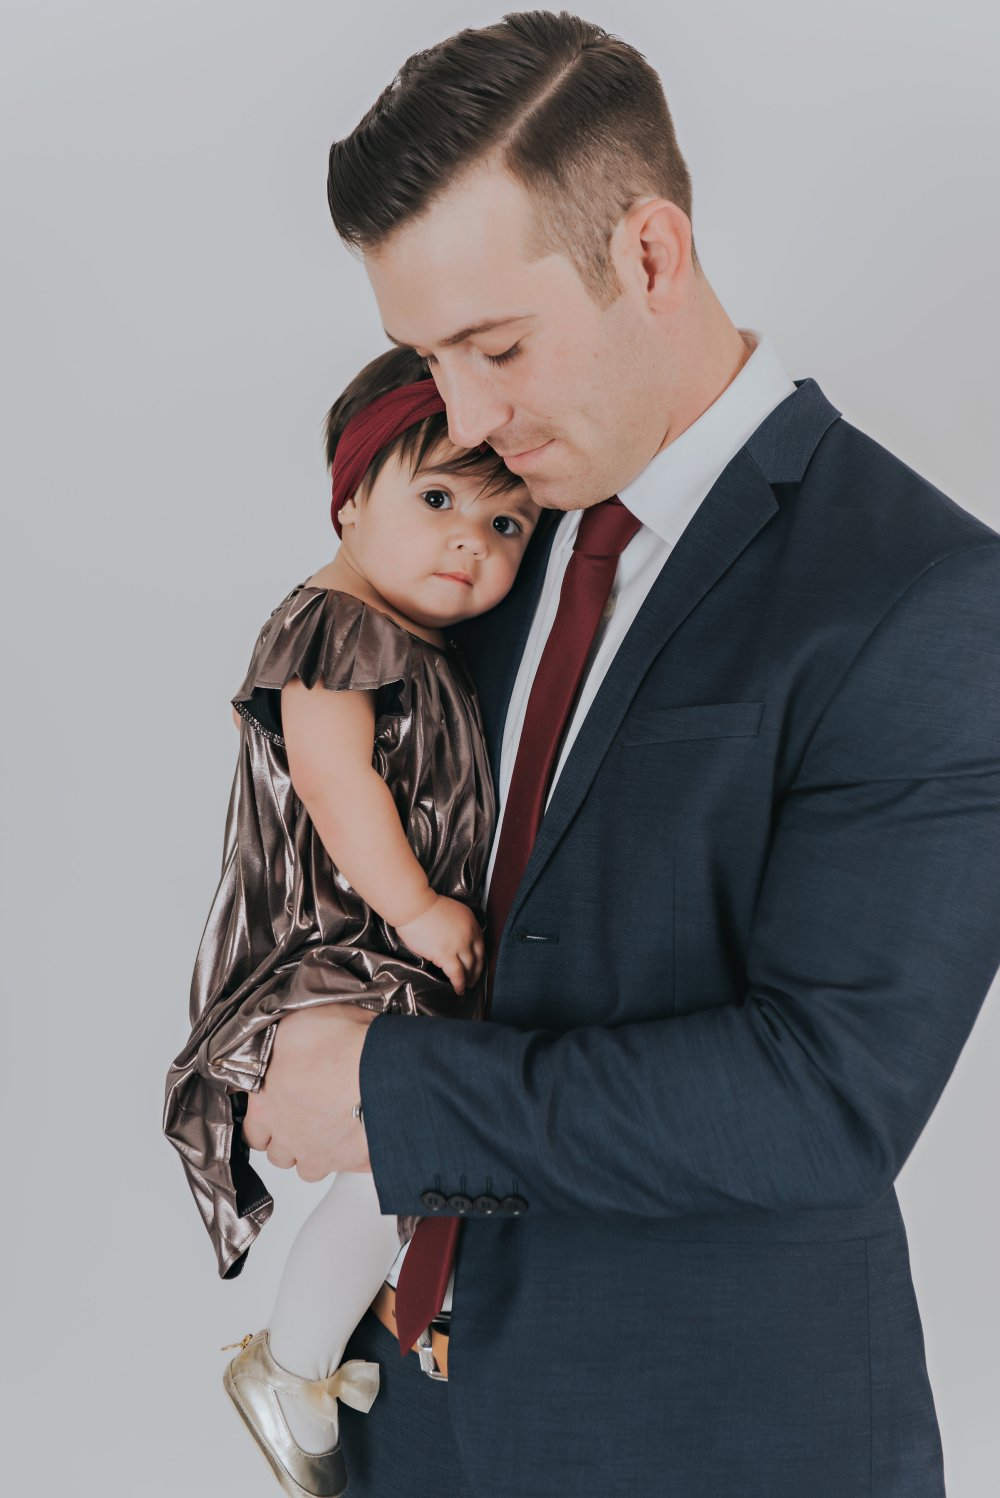 Swoon! I almost can't deal! This melts my heart! A perfect picture of the bond between a daddy and his baby girl! I love how his tie and her hair wrap match! This family photo shoot definitely is tugging on my heart strings! #daddydaughter #familyphoto #coordinatingoutfits #familyphotooutfits #specialoccasion